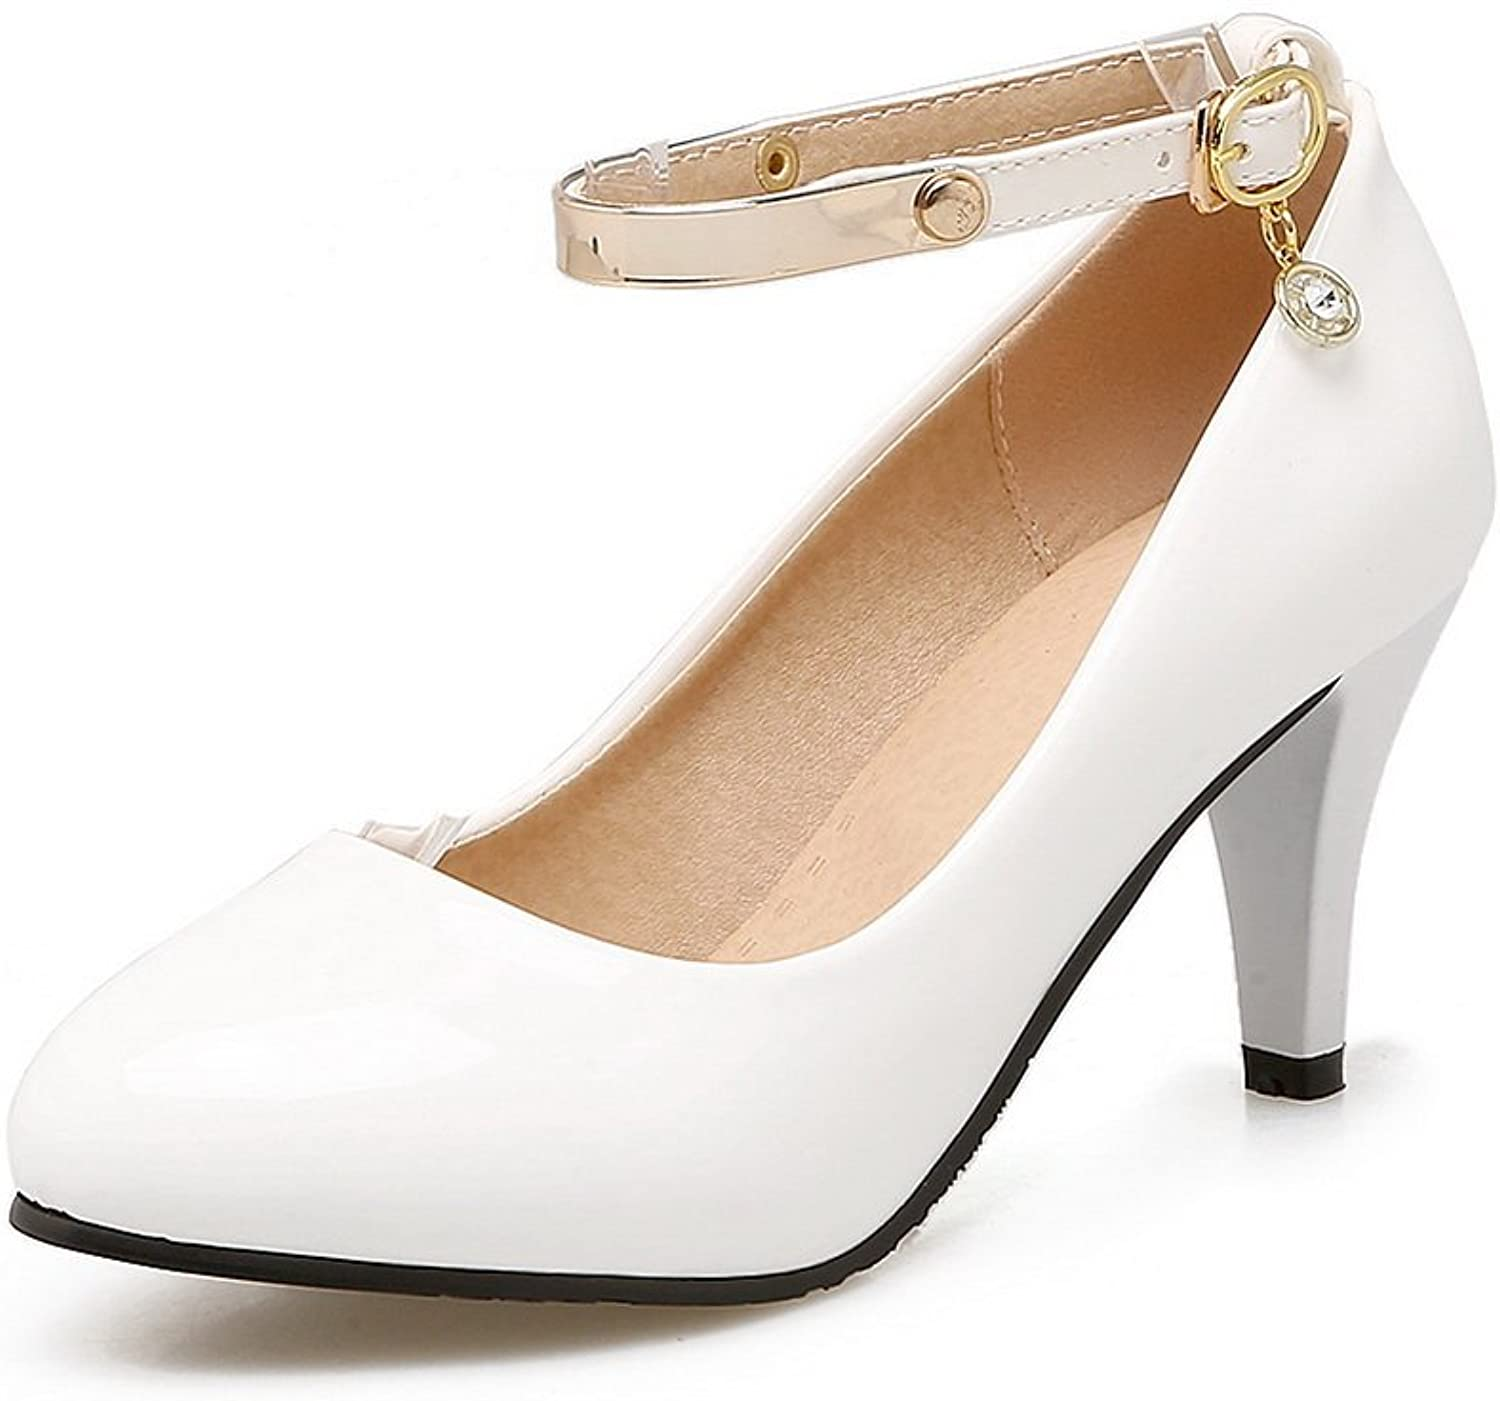 BalaMasa Womens Buckle Round-Toe Low-Cut Uppers Patent-Leather Pumps shoes